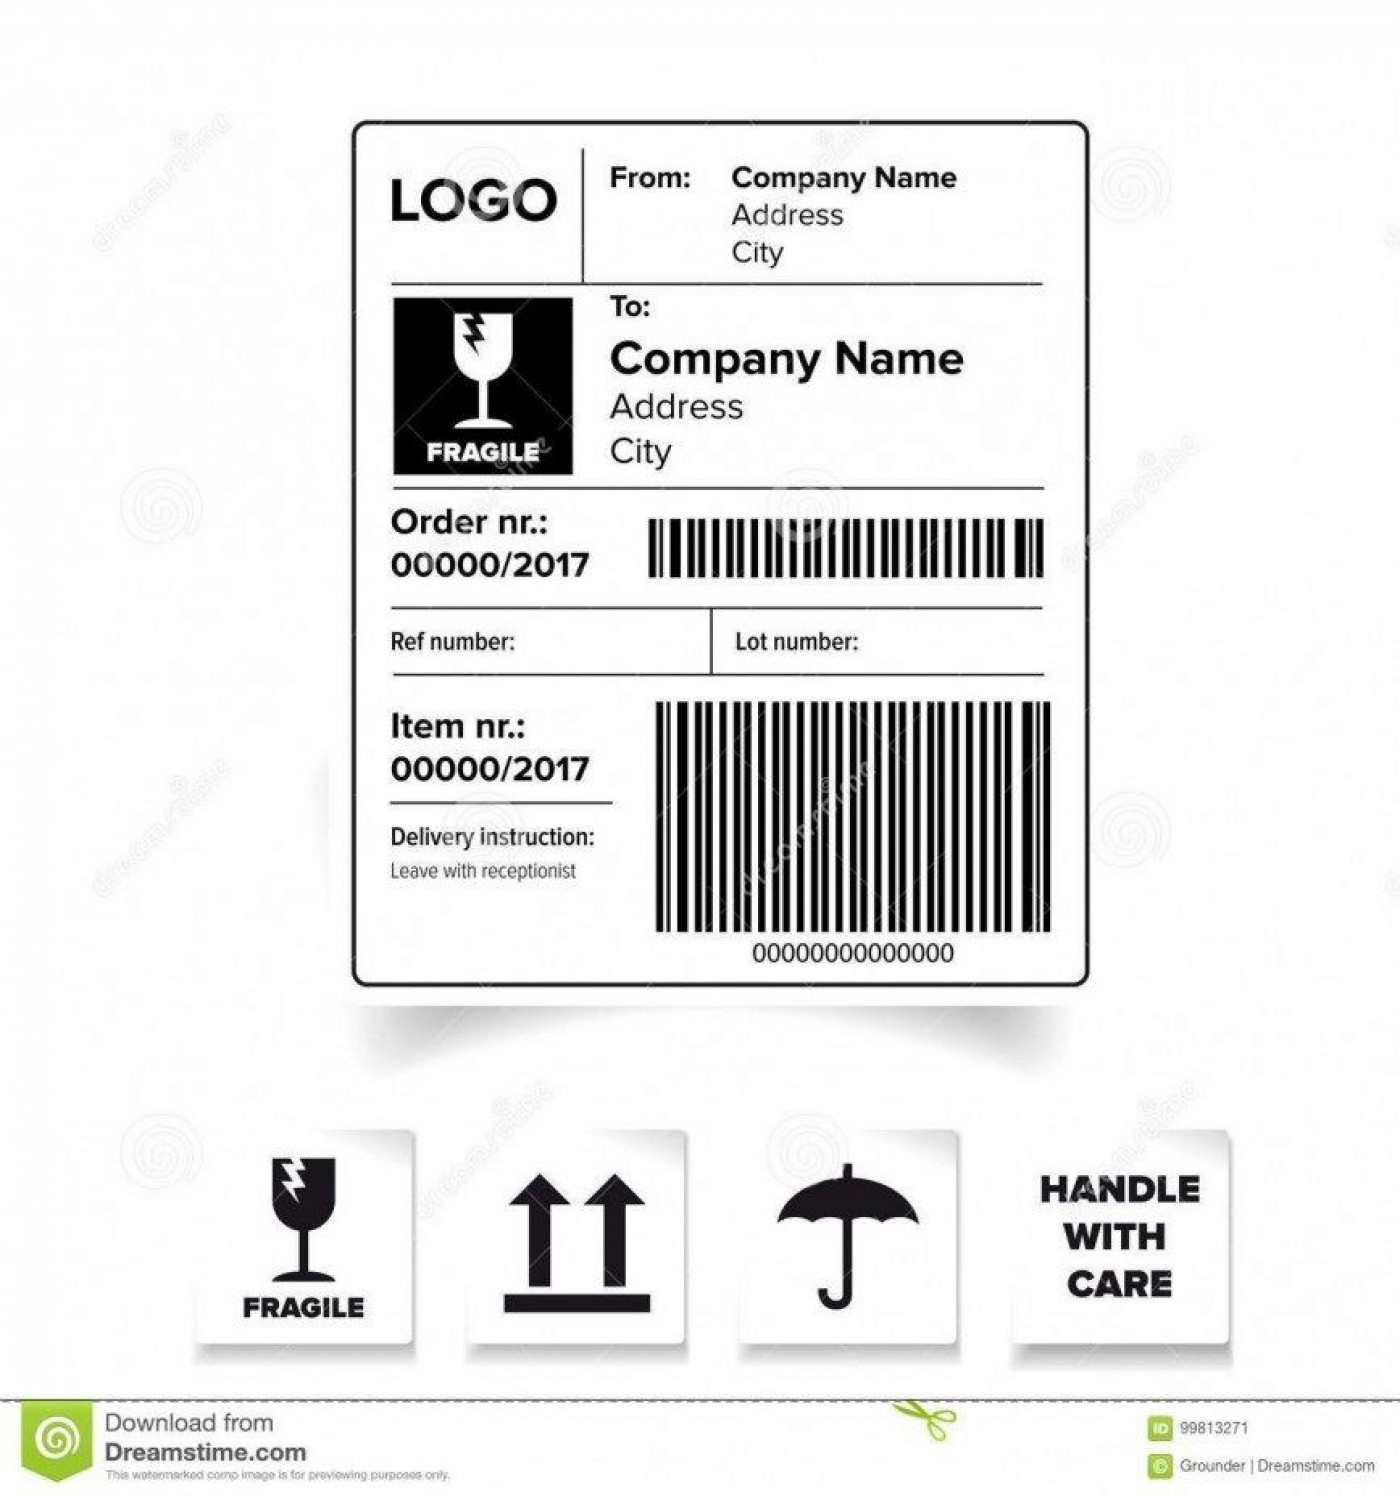 008 Awful Free Shipping Label Template Printable Image  Online1400